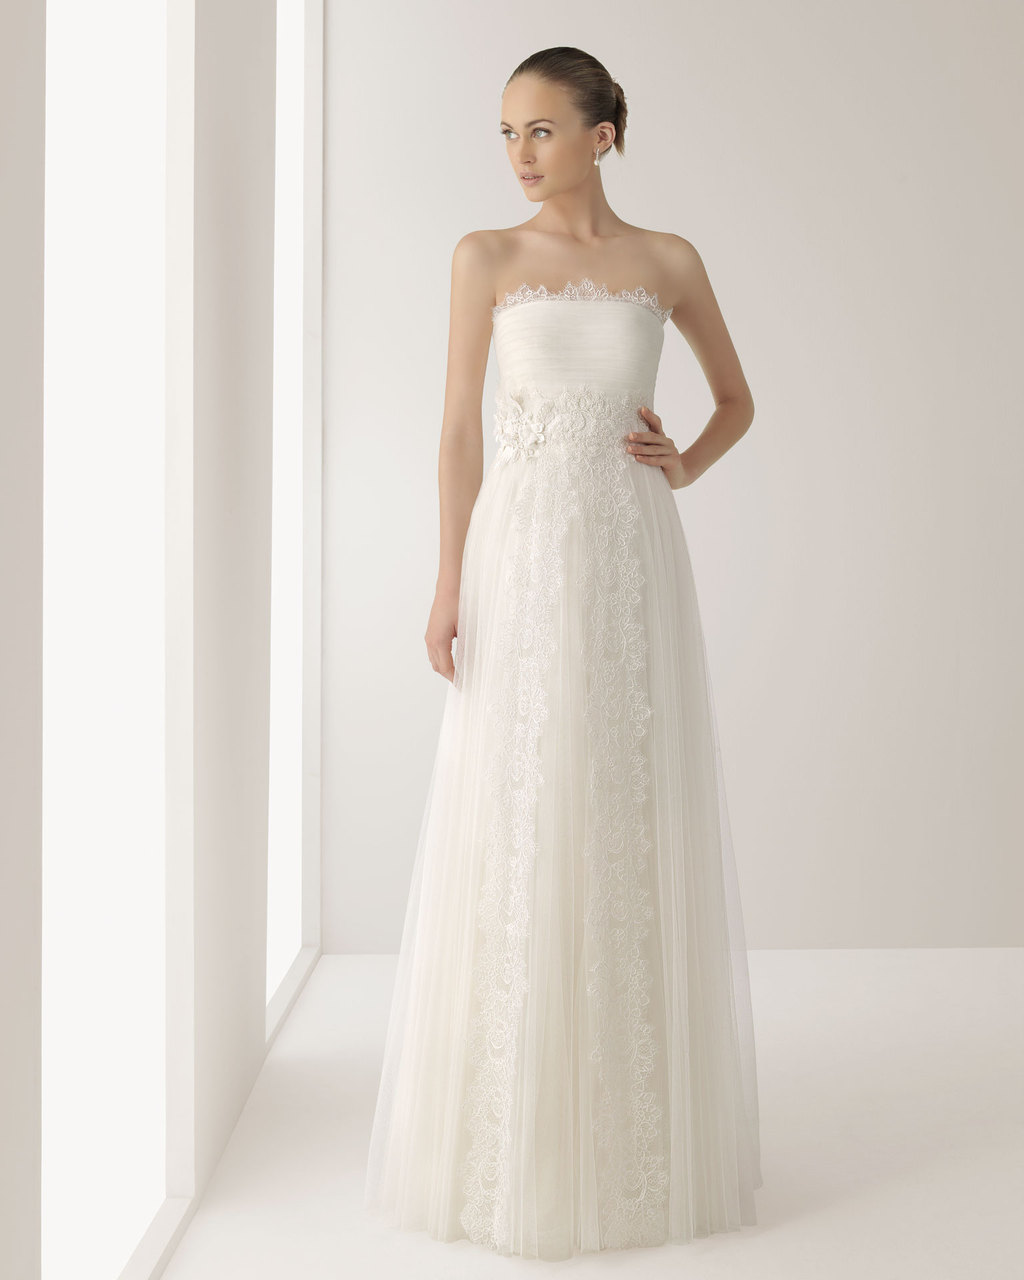 2013 wedding dress Soft by Rosa Clara bridal gowns Jonico veil